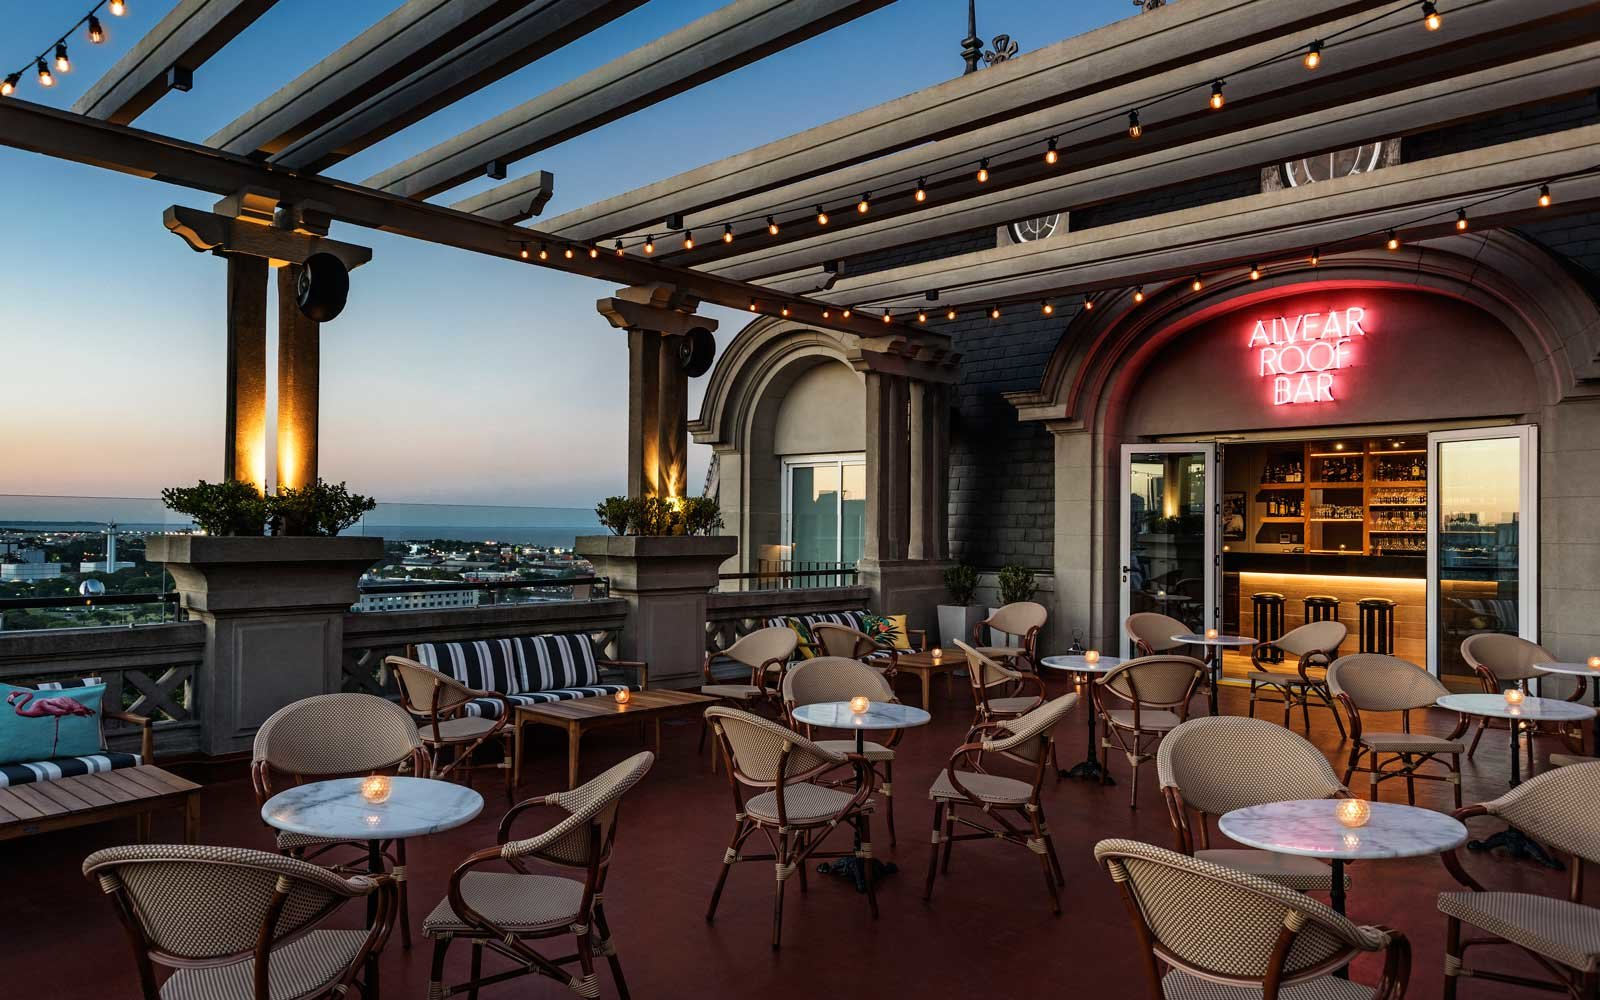 Alvear Roof Bar at the Alvear Palace in Buenos Aires